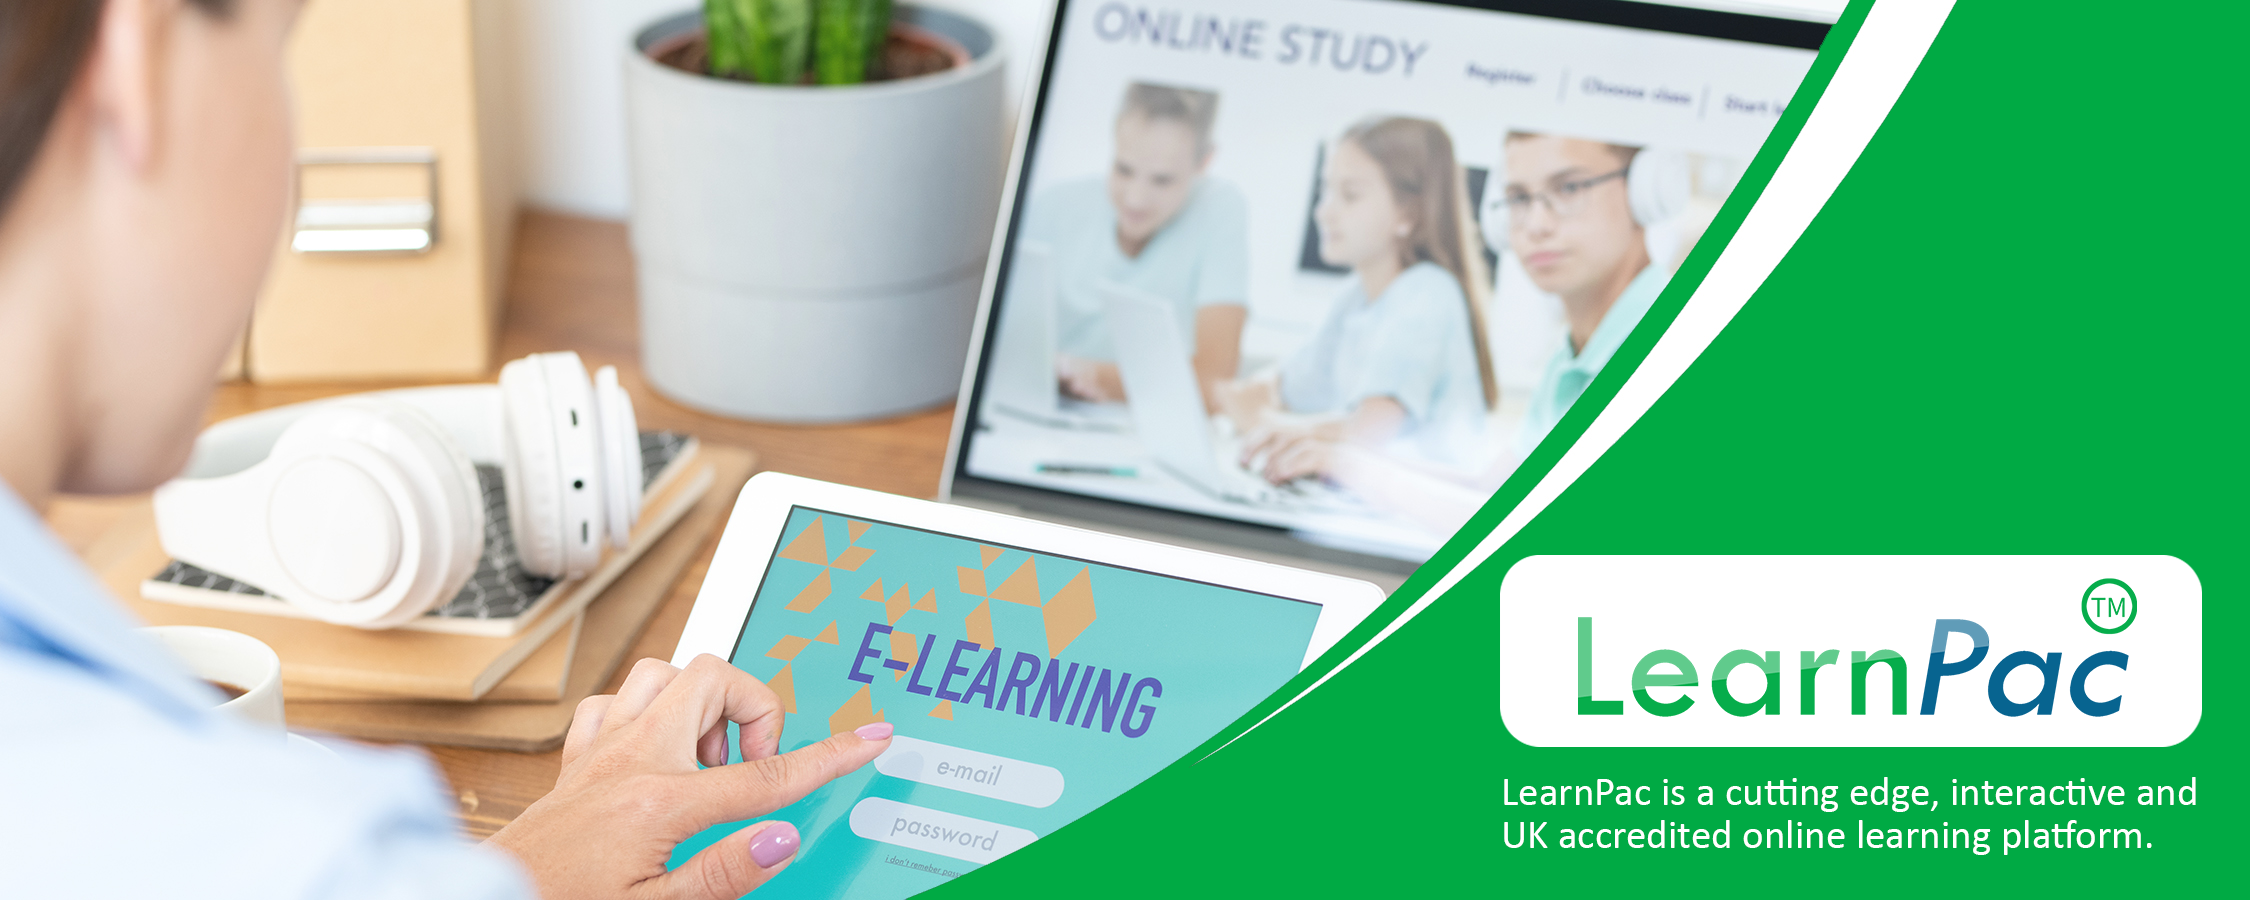 Delegation and Referrals - Enhanced Dental CPD Course - Online Learning Courses - E-Learning Courses - LearnPac Systems UK --